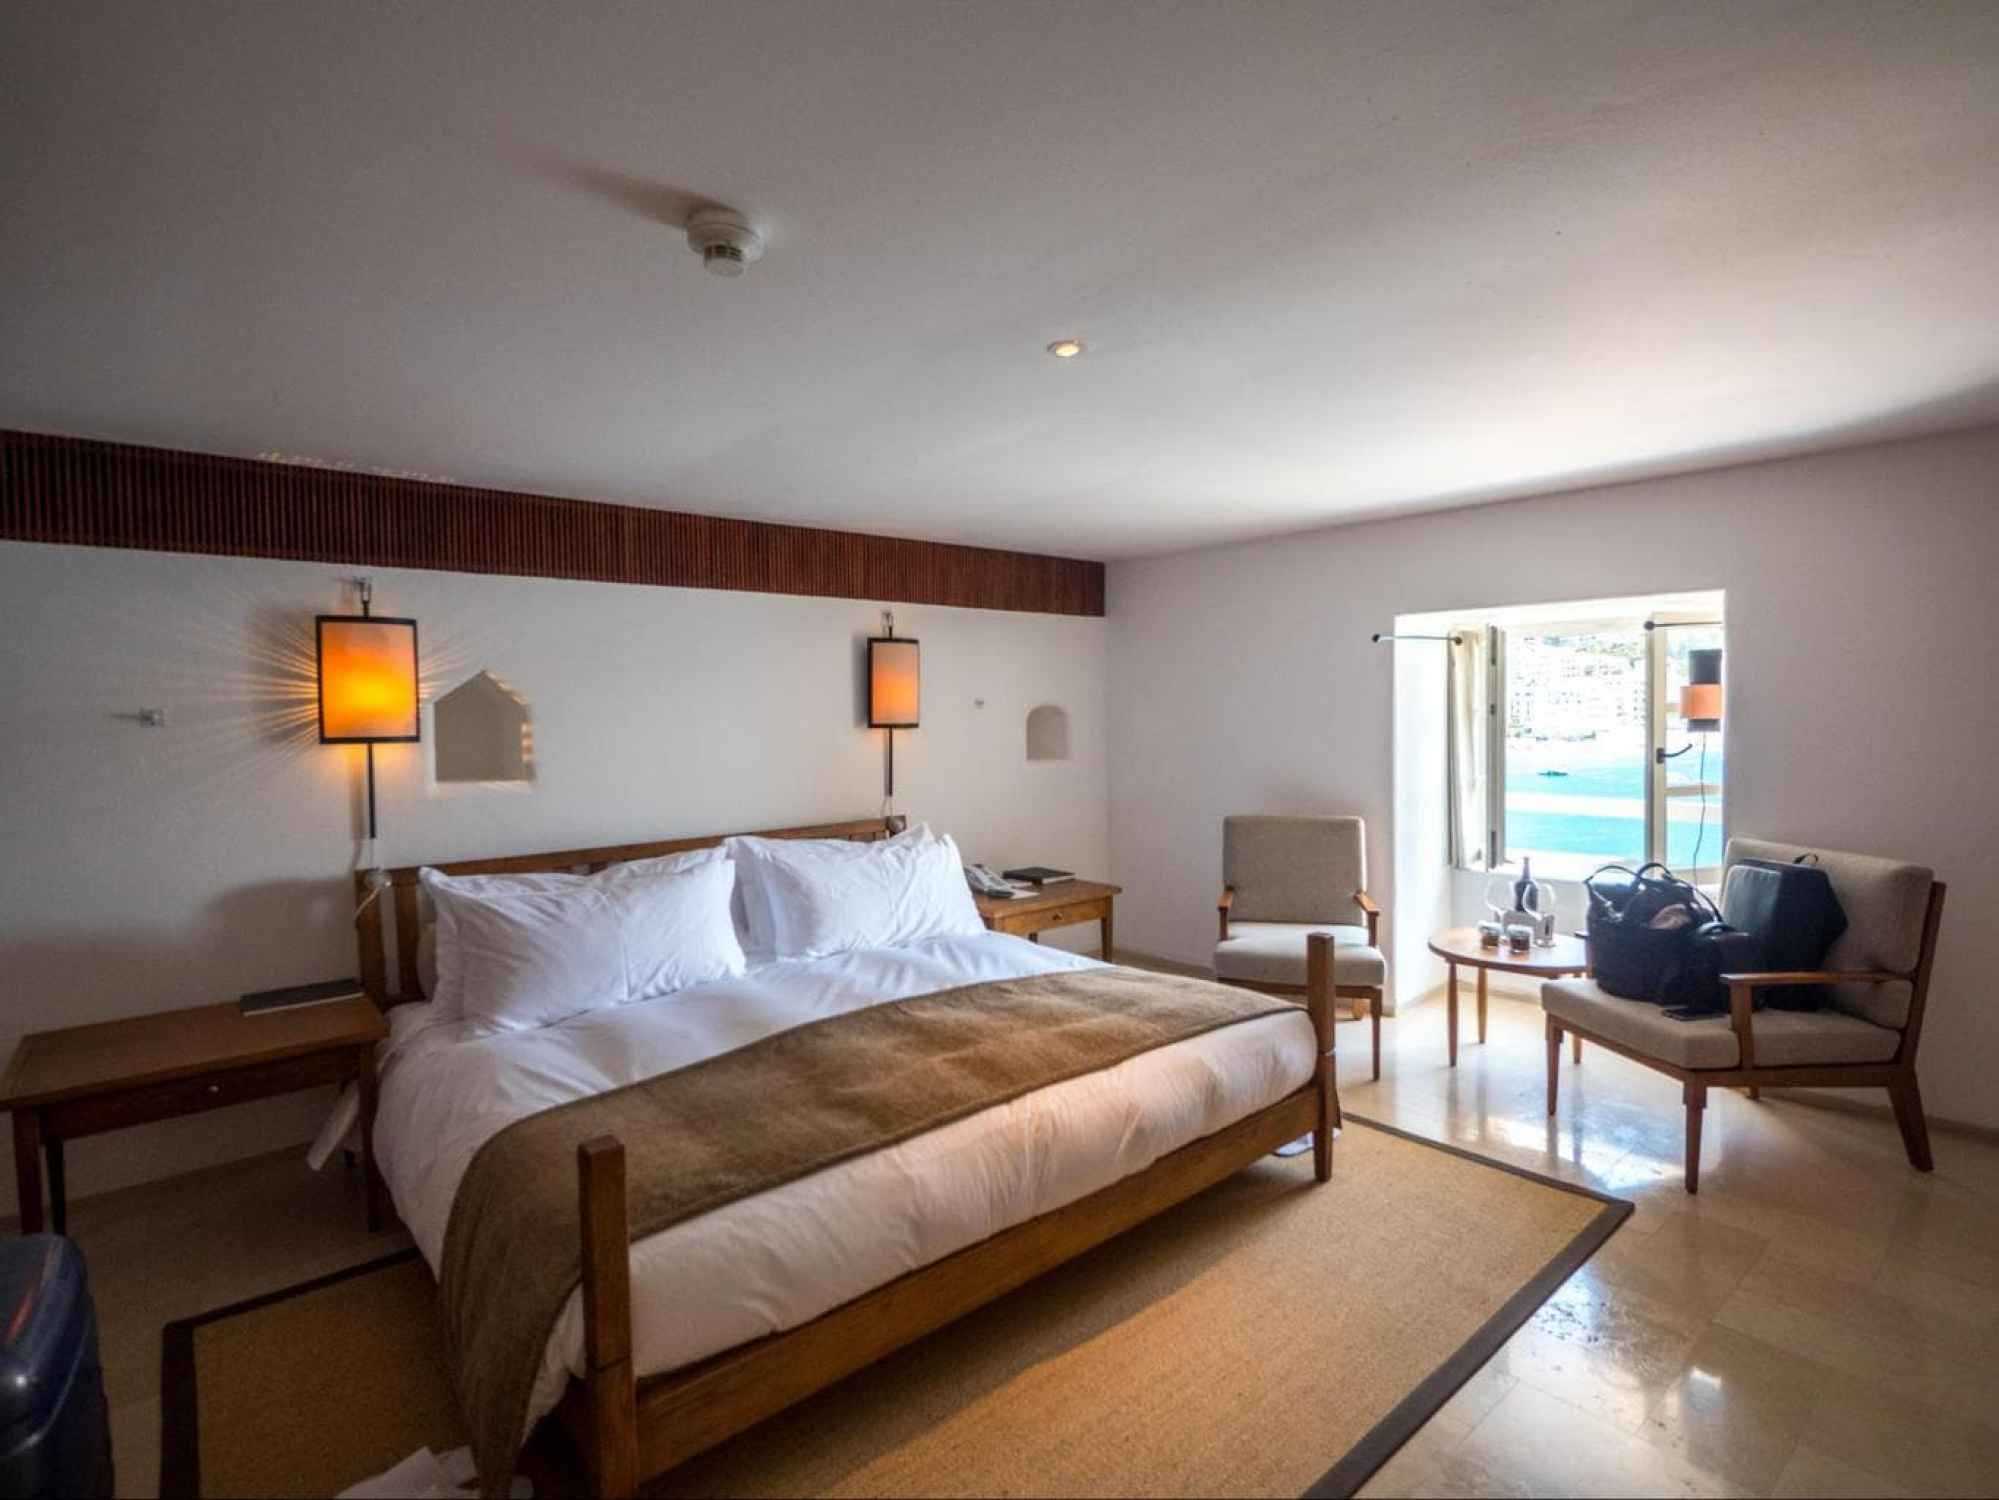 Deluxe cottage rooms at Aman Sveti Stefan